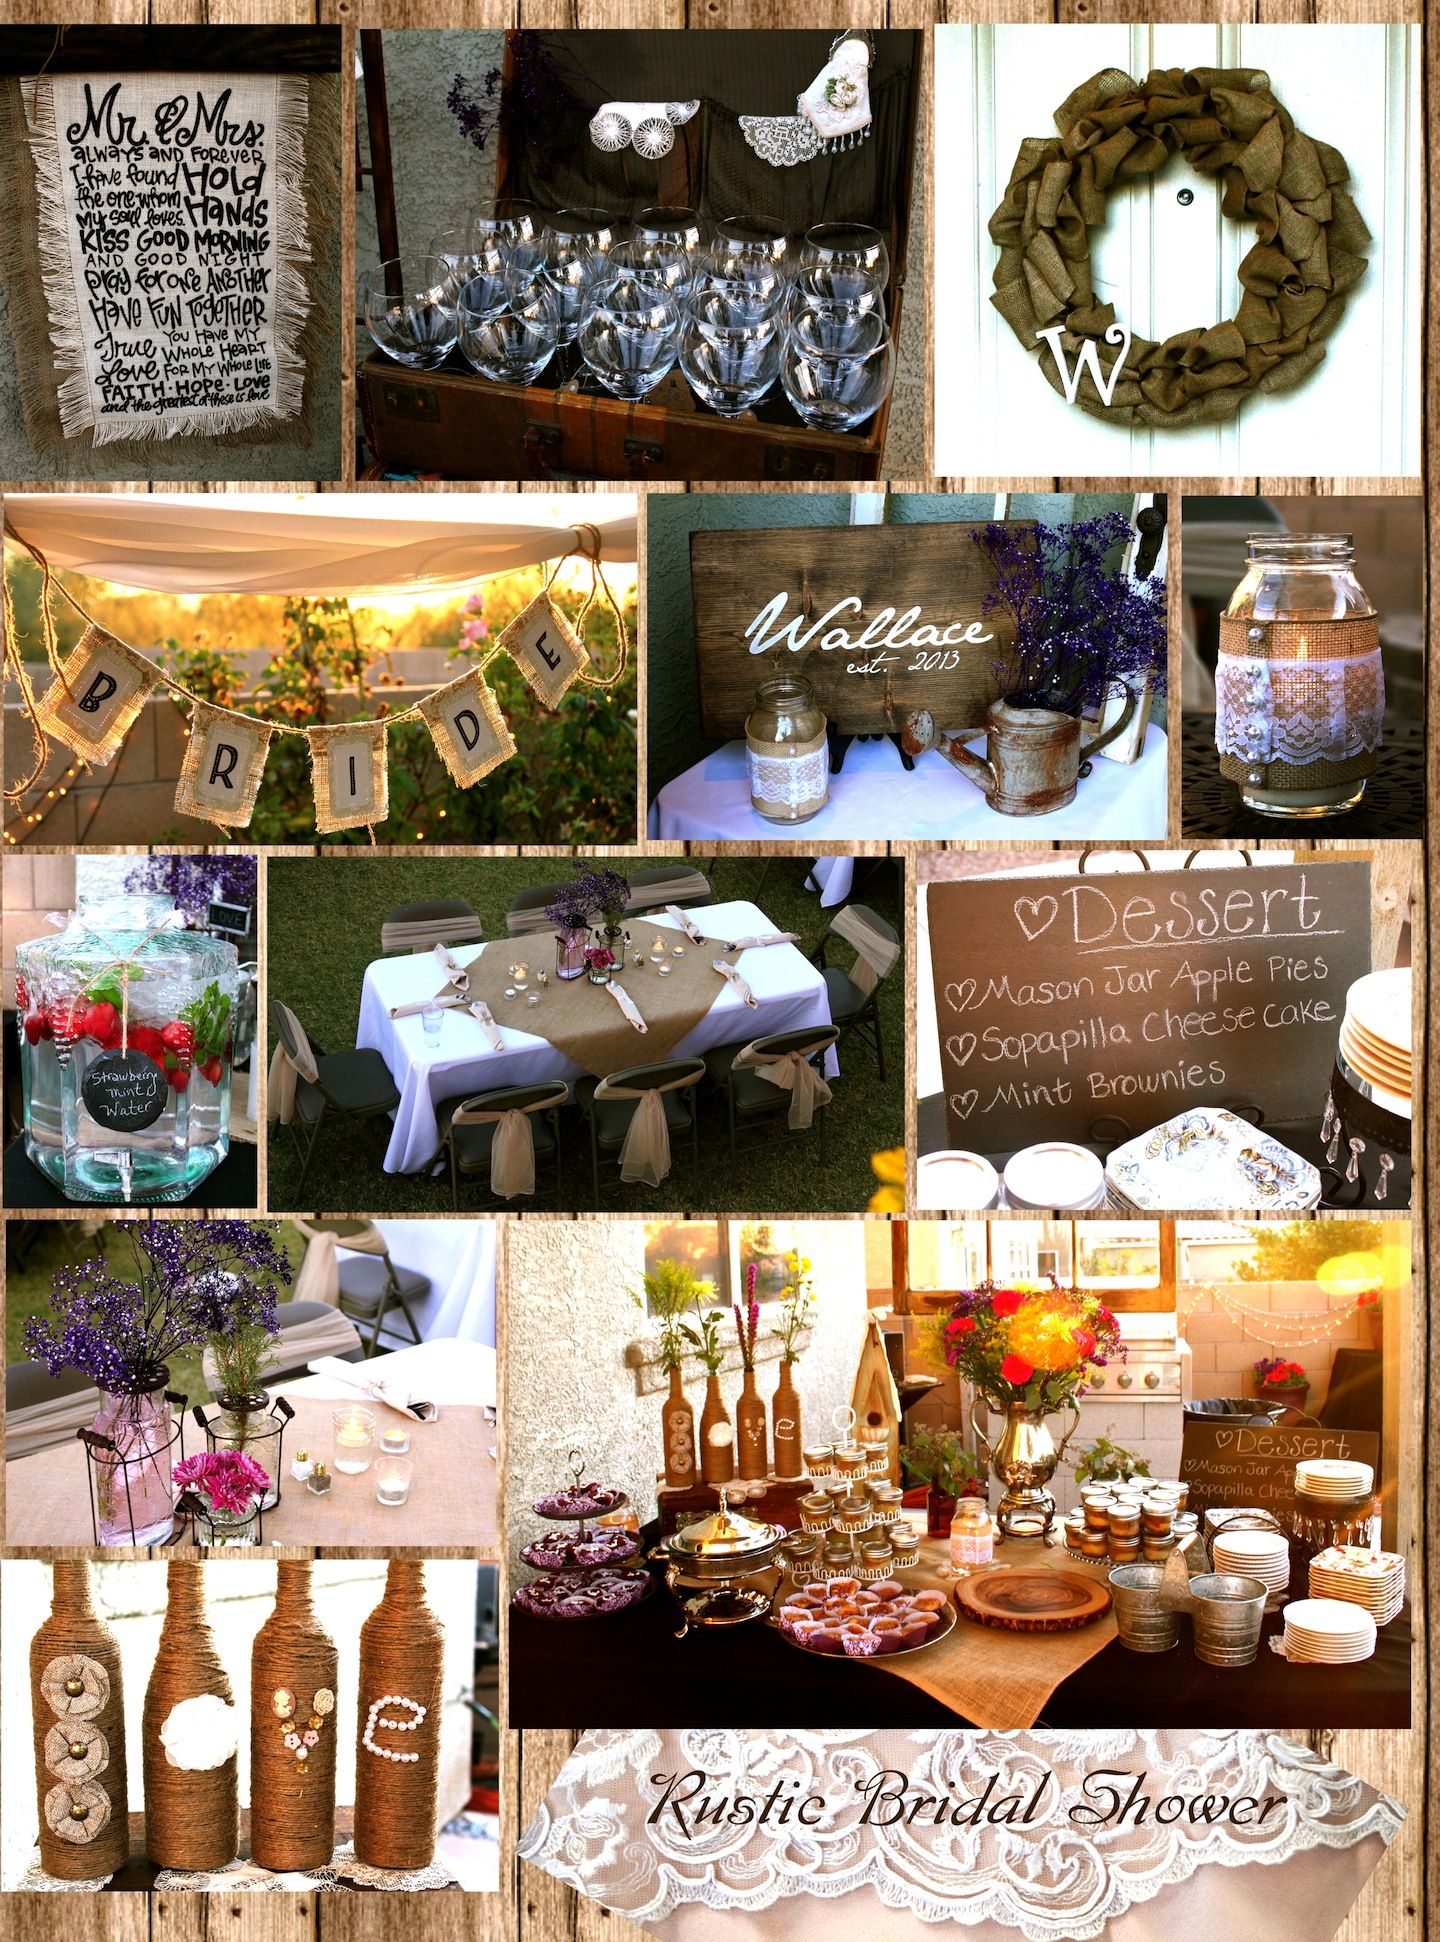 Chic Rustic Bridal Shower - lots of burlap and lace ...